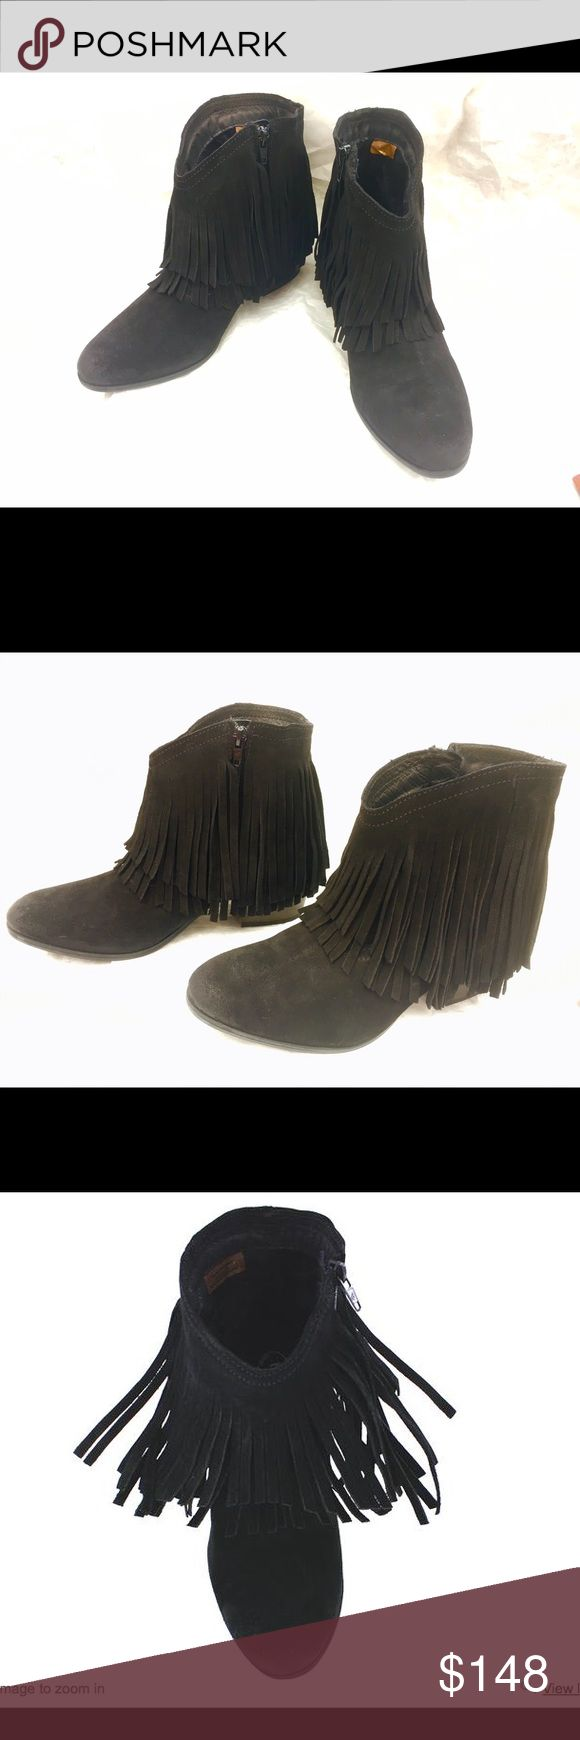 """Taos Shag Leather Fringe Boot 40/US 9 New With Box Check out the video on youtube from HSN, google """"Taos Footwear Shag Suede Fringe Ankle Bootie"""" You'll see how beautiful theboots walk and how sexy the fringes swing and flow. Very stylish, playful and cute.  40/US 9-9.5 in black are ALL sold out. If this is your size, grab it quick. It'll be gone soon. Retailed $240. Ship with the original box for a lower shipping cost. Concerned buyers, please don't bid.   Heel Height: 2 1/4"""" Upper…"""